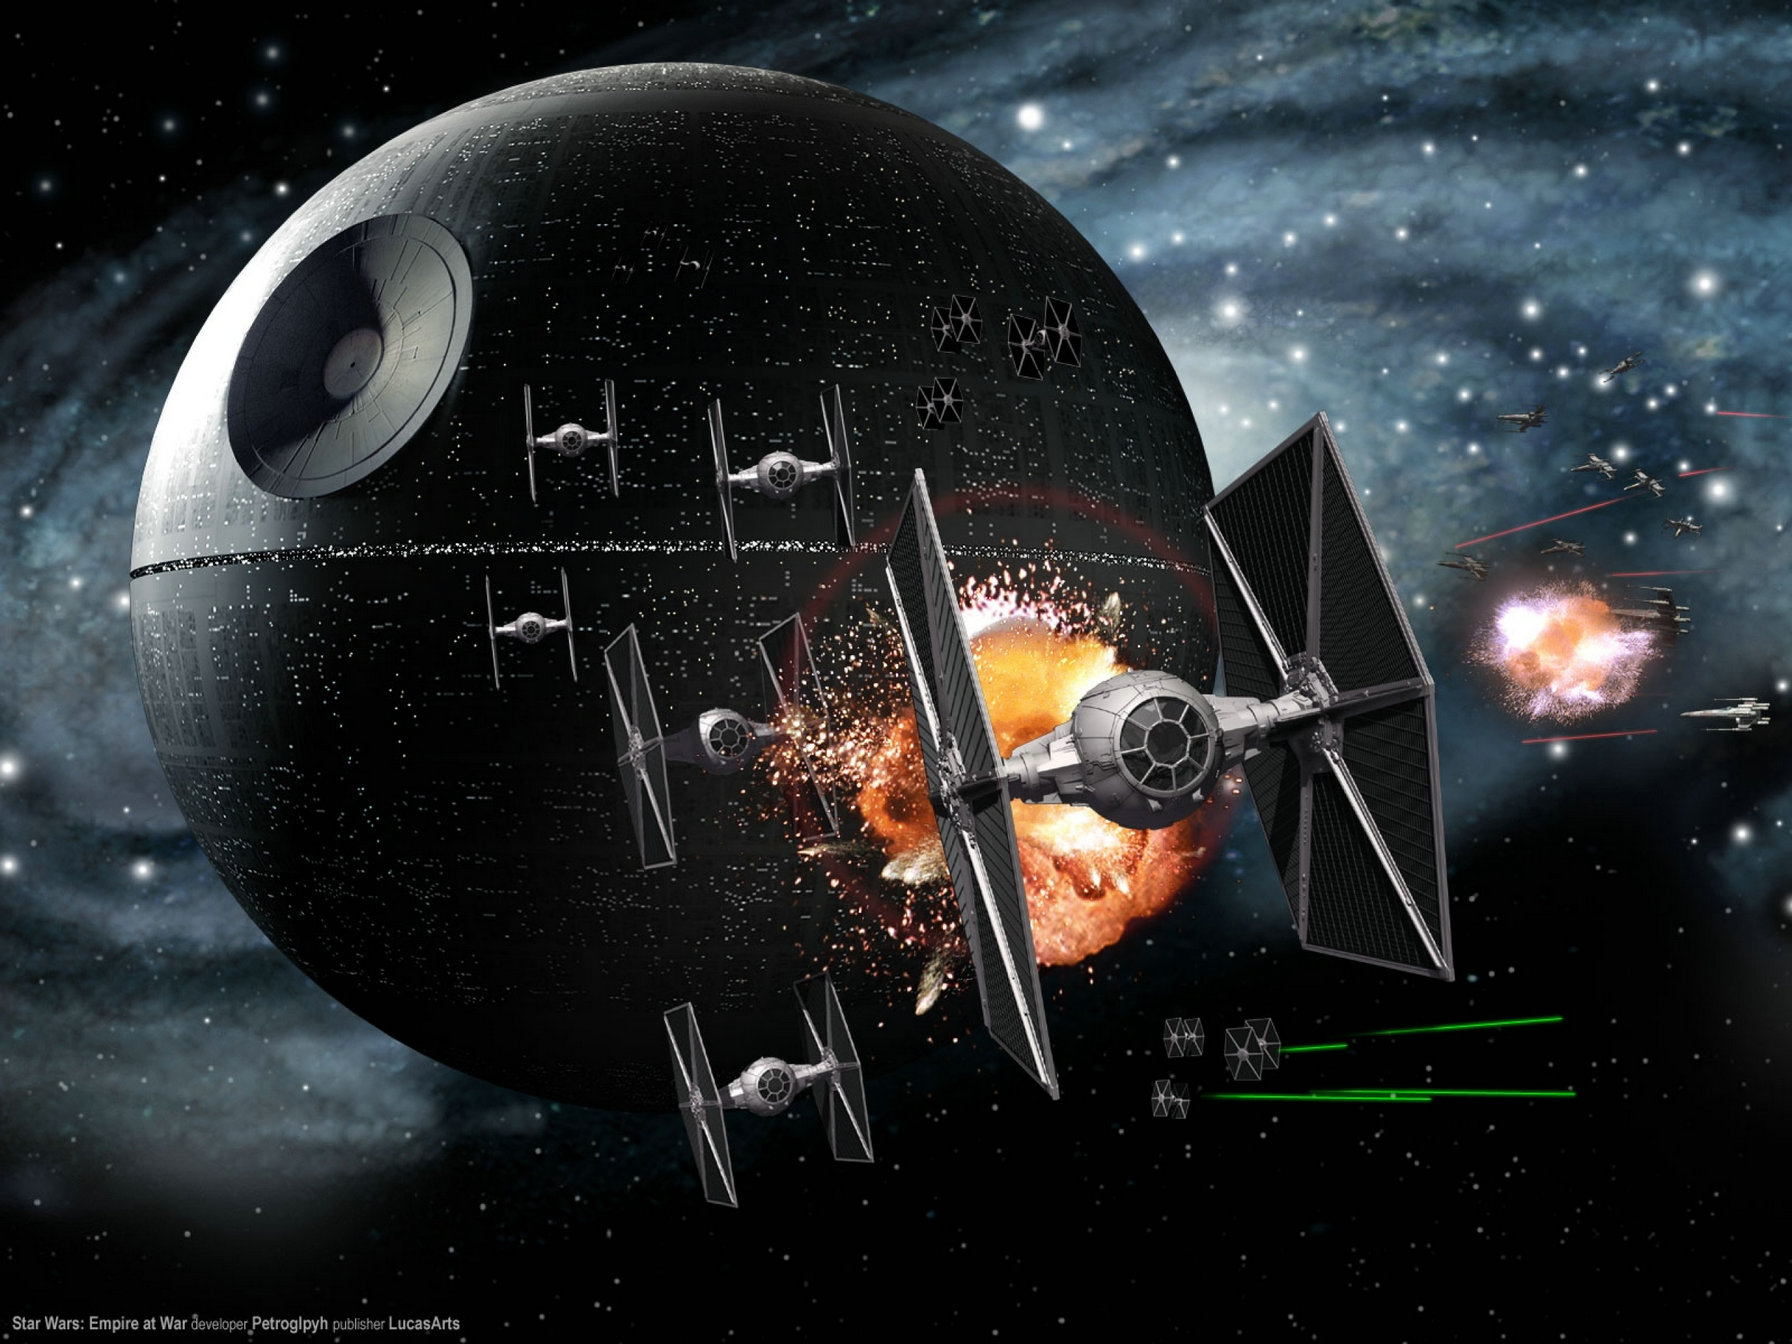 Star Wars Death Star Space Ship Background High Quality Computer